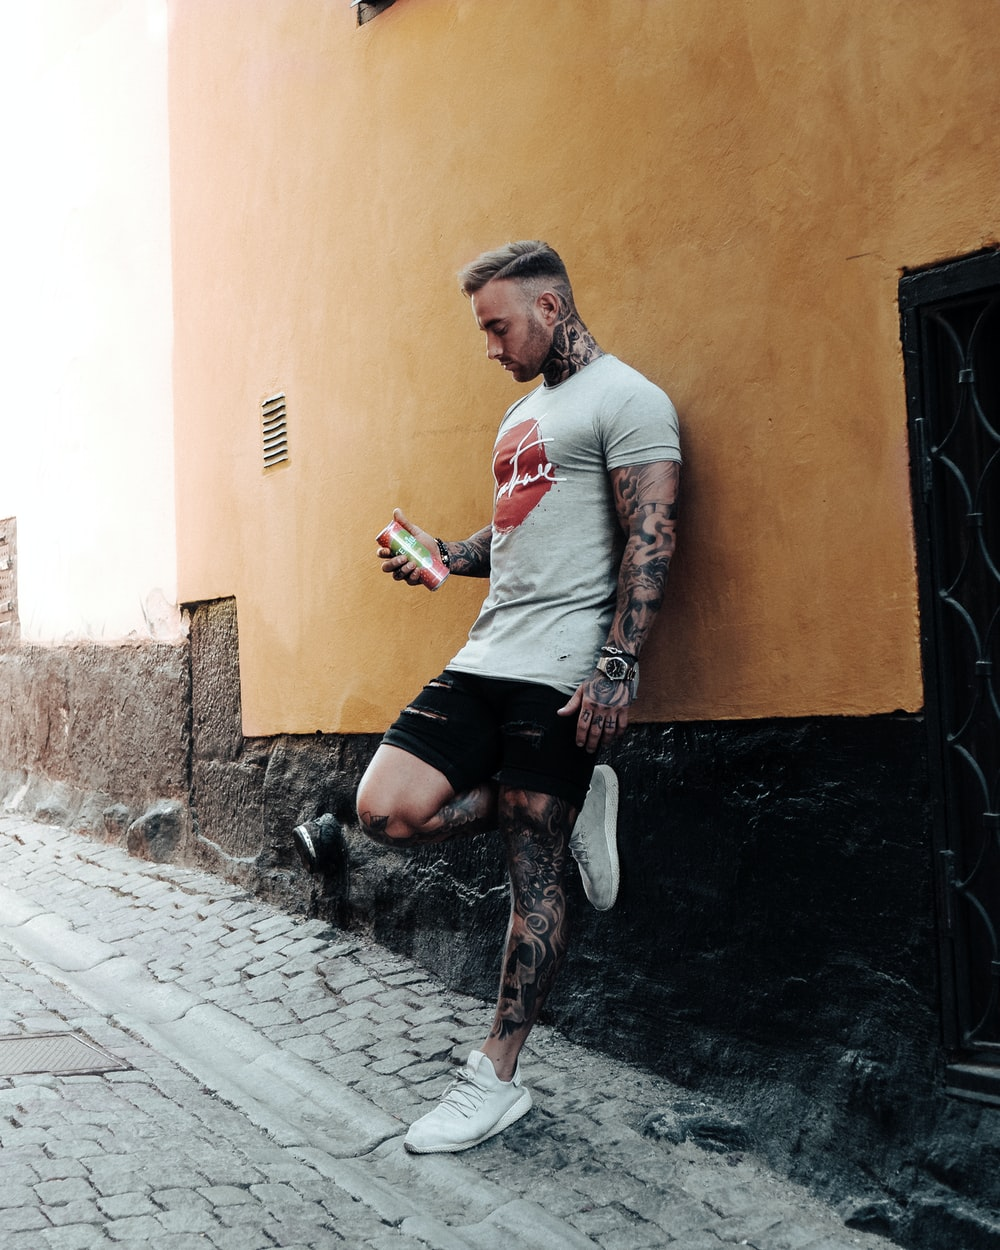 man covered with tattoo leaning on wall holding can during daytime